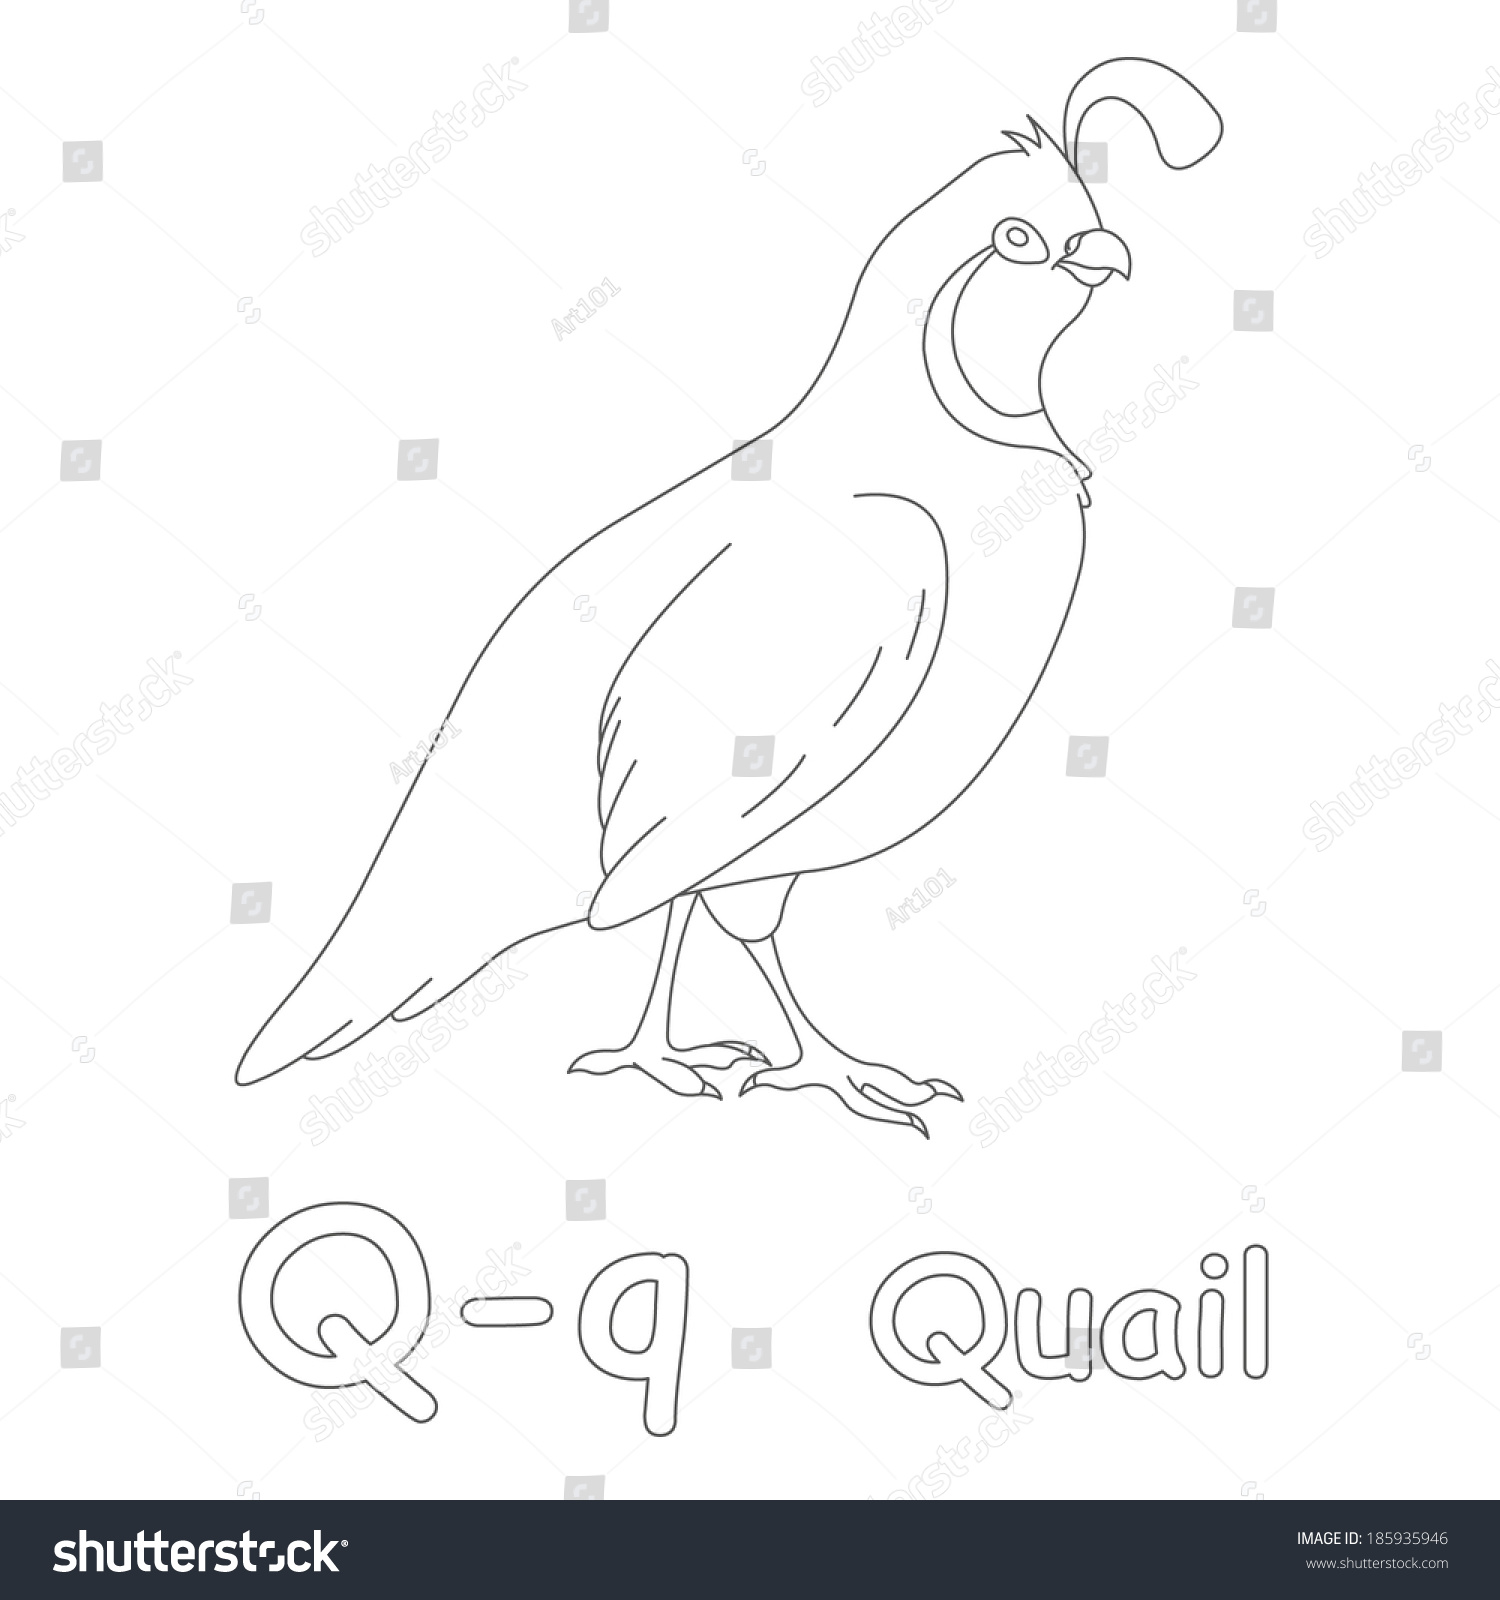 Q Quail Coloring Page Stock Illustration 185935946 Shutterstock